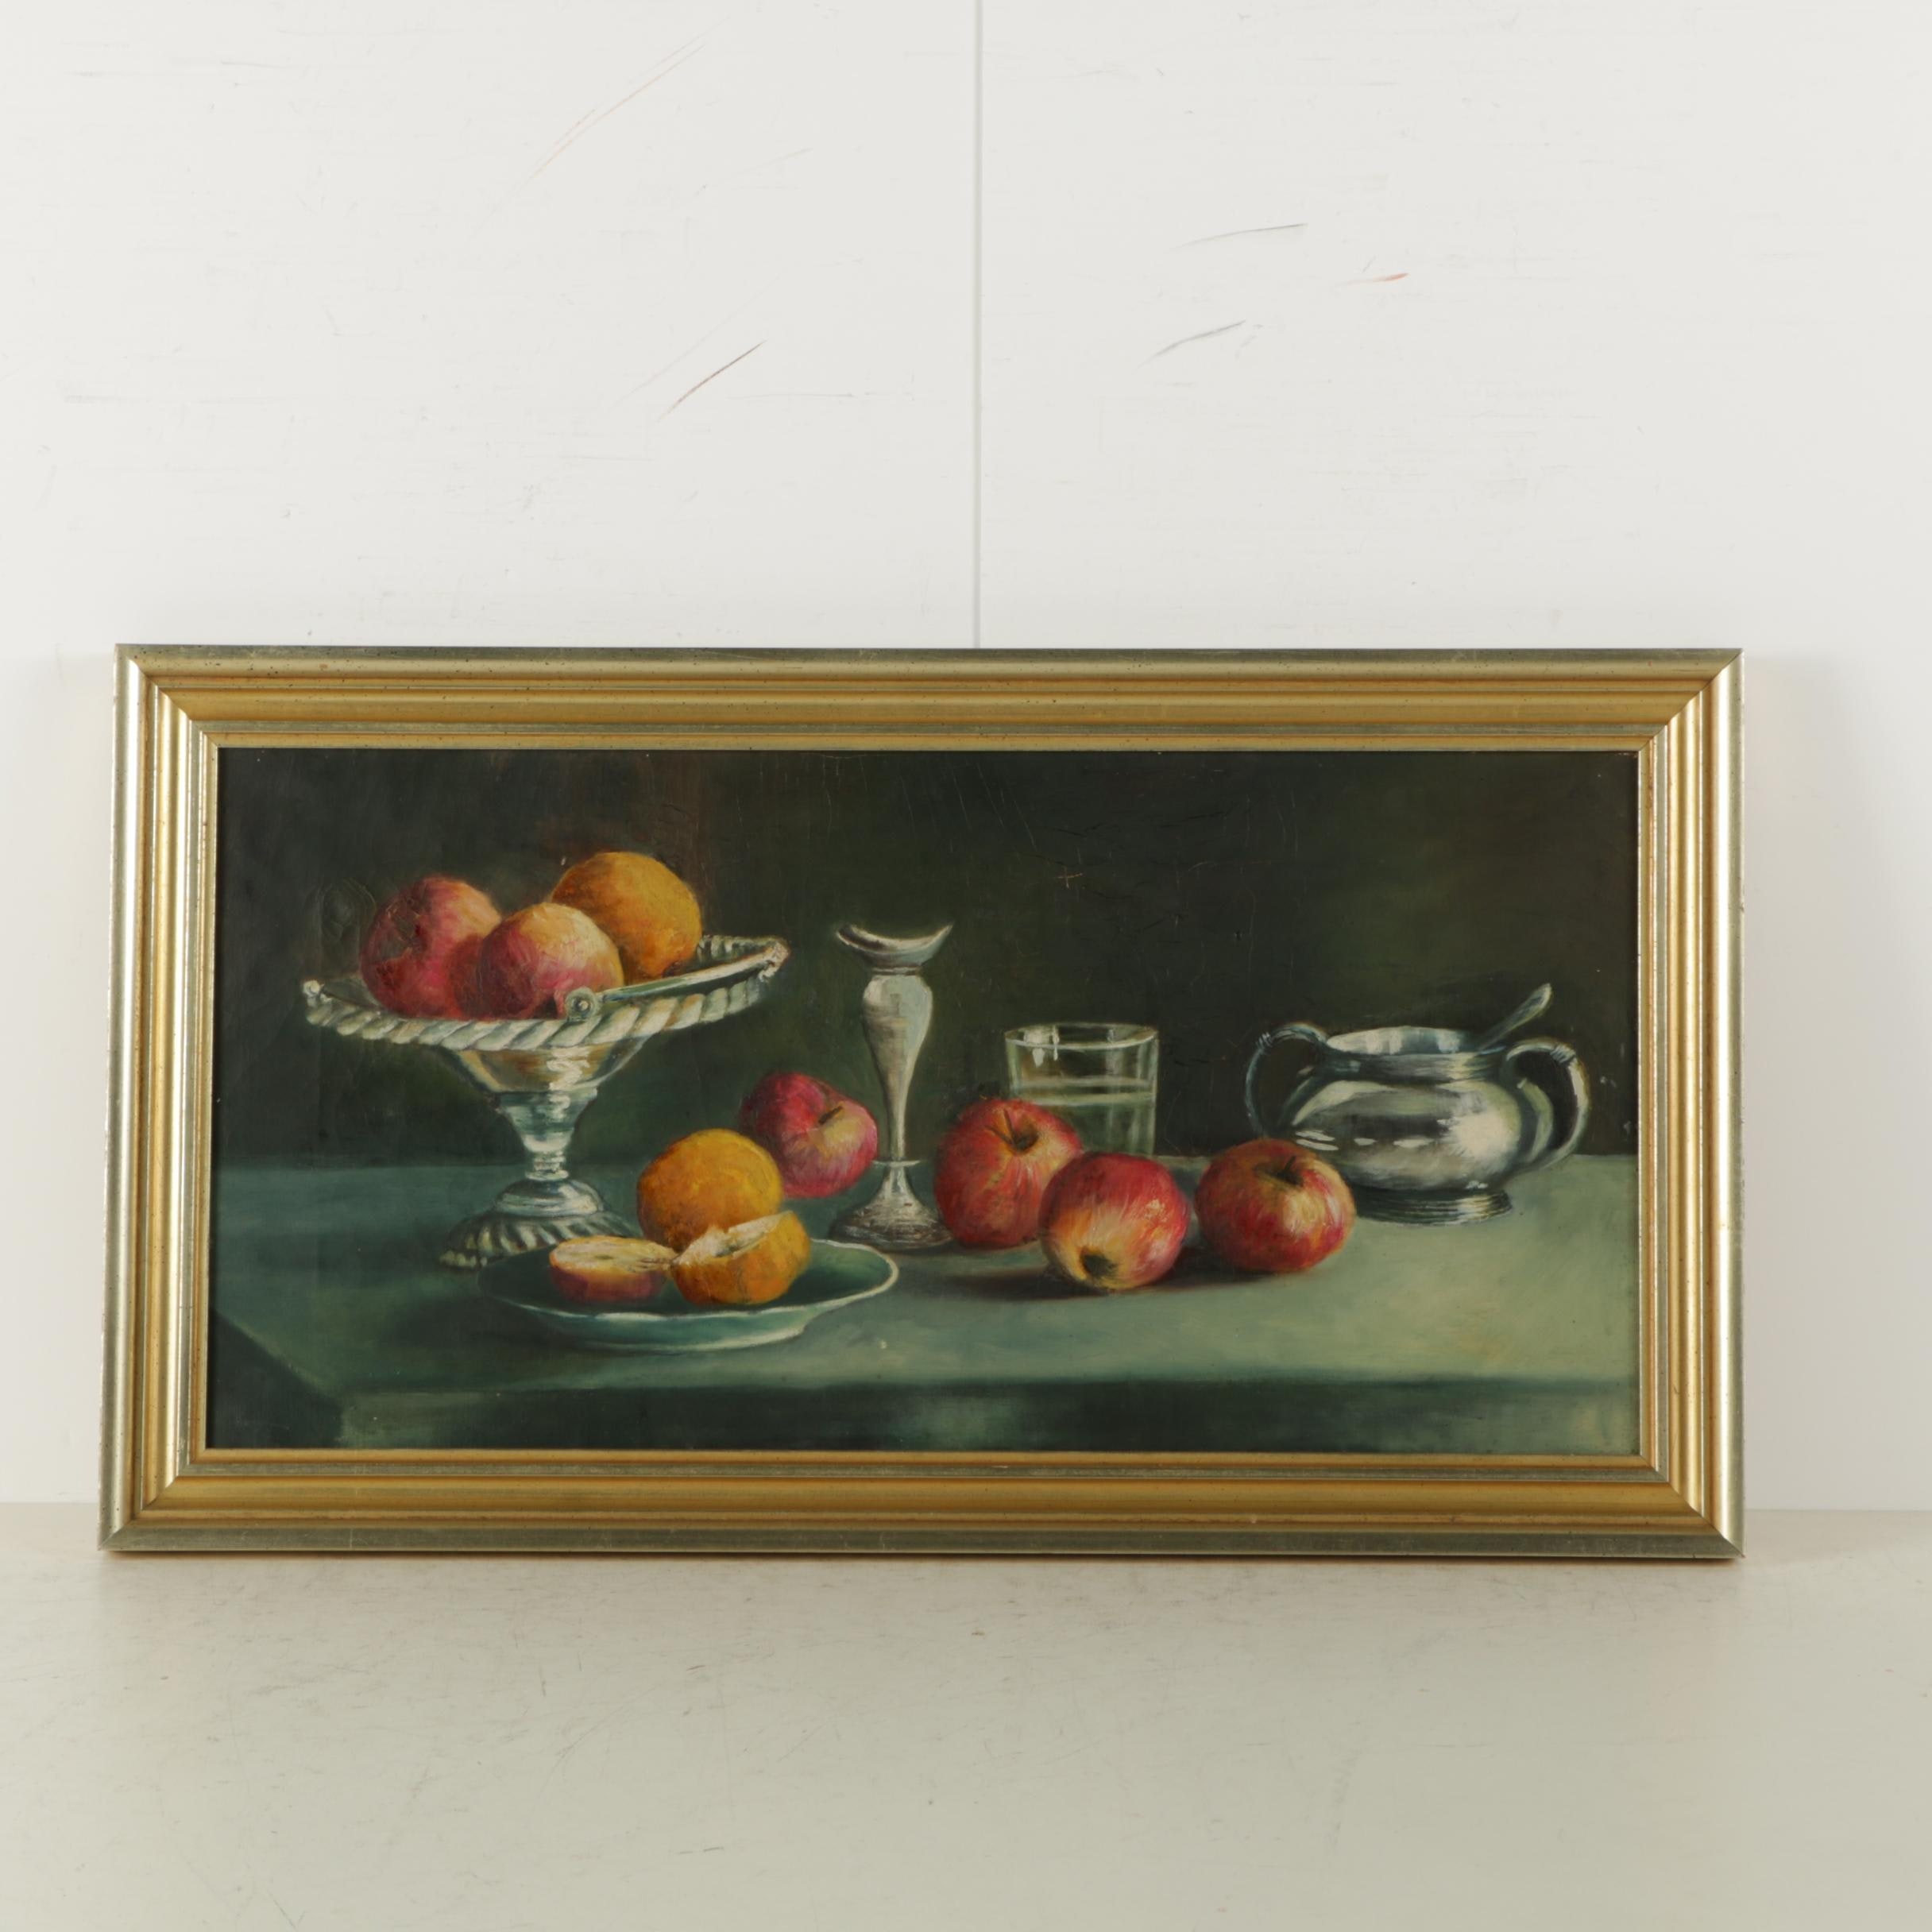 Oil Painting on Canvas of a Fruit Still Life